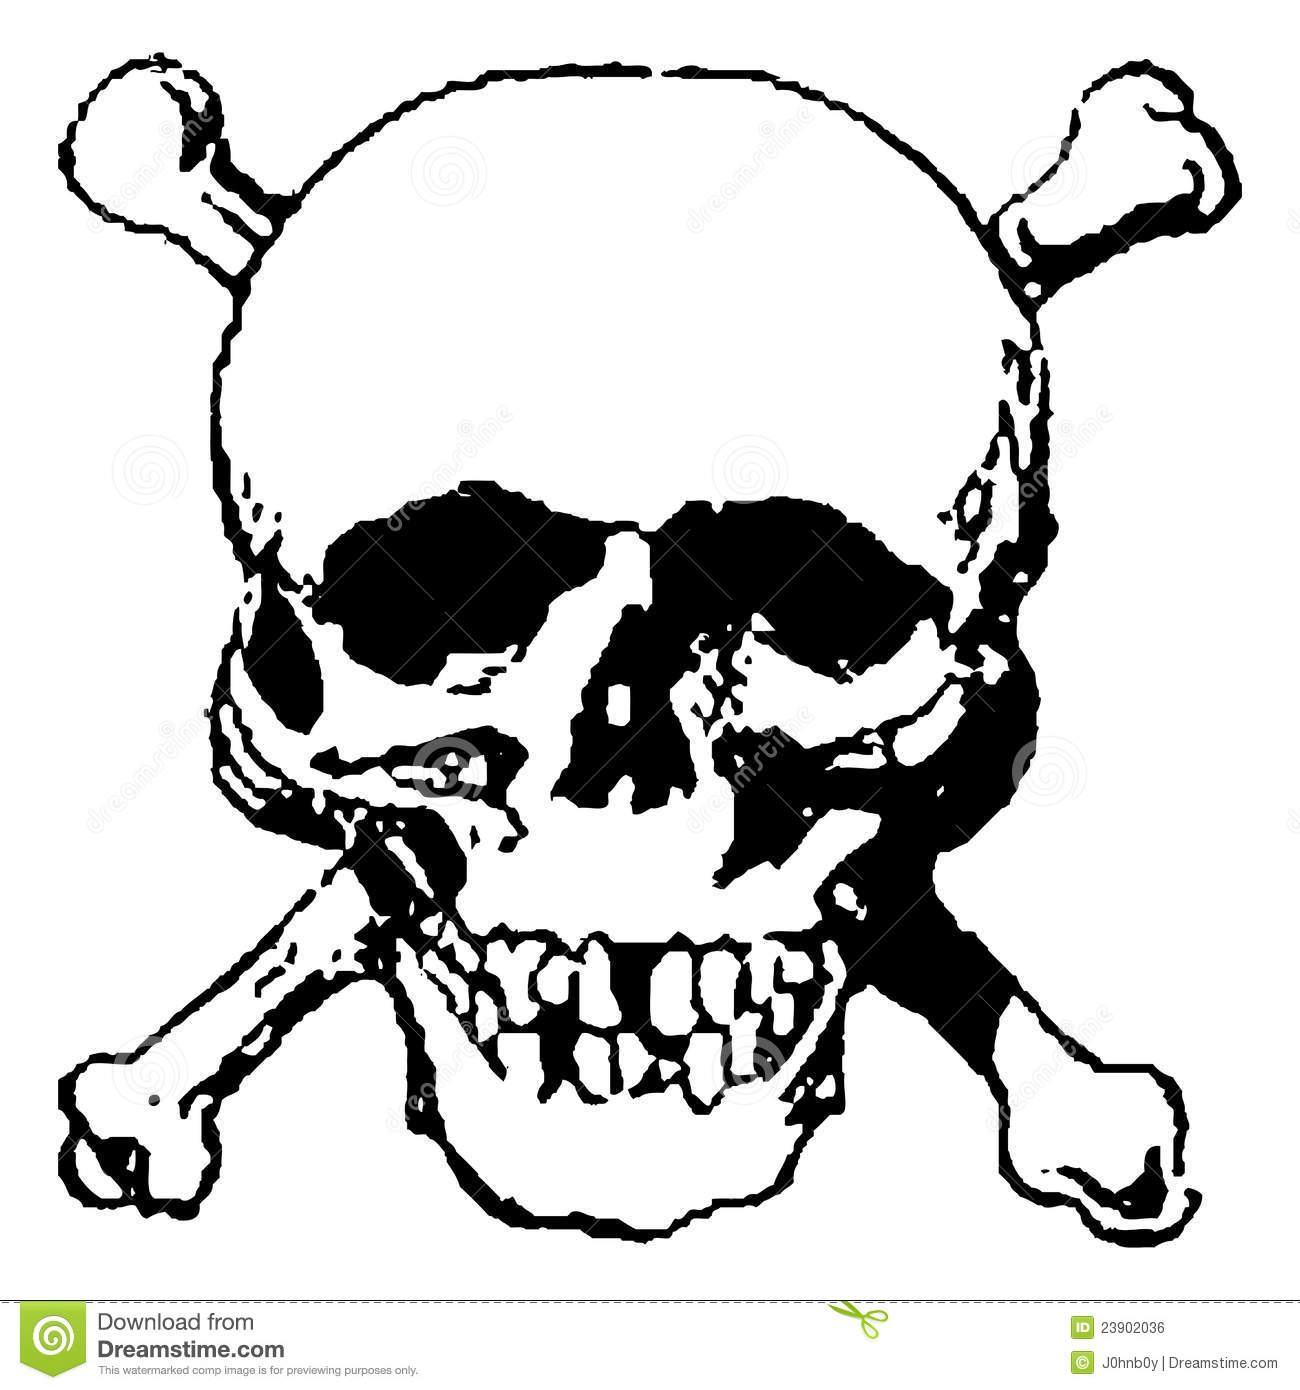 Frame also 321655598364781568 together with Clipart Dc8MAobce in addition Royalty Free Stock Image Skull Crossbones Image23902036 besides Cute Dog Clipart Black And White 602. on scary computer wallpaper